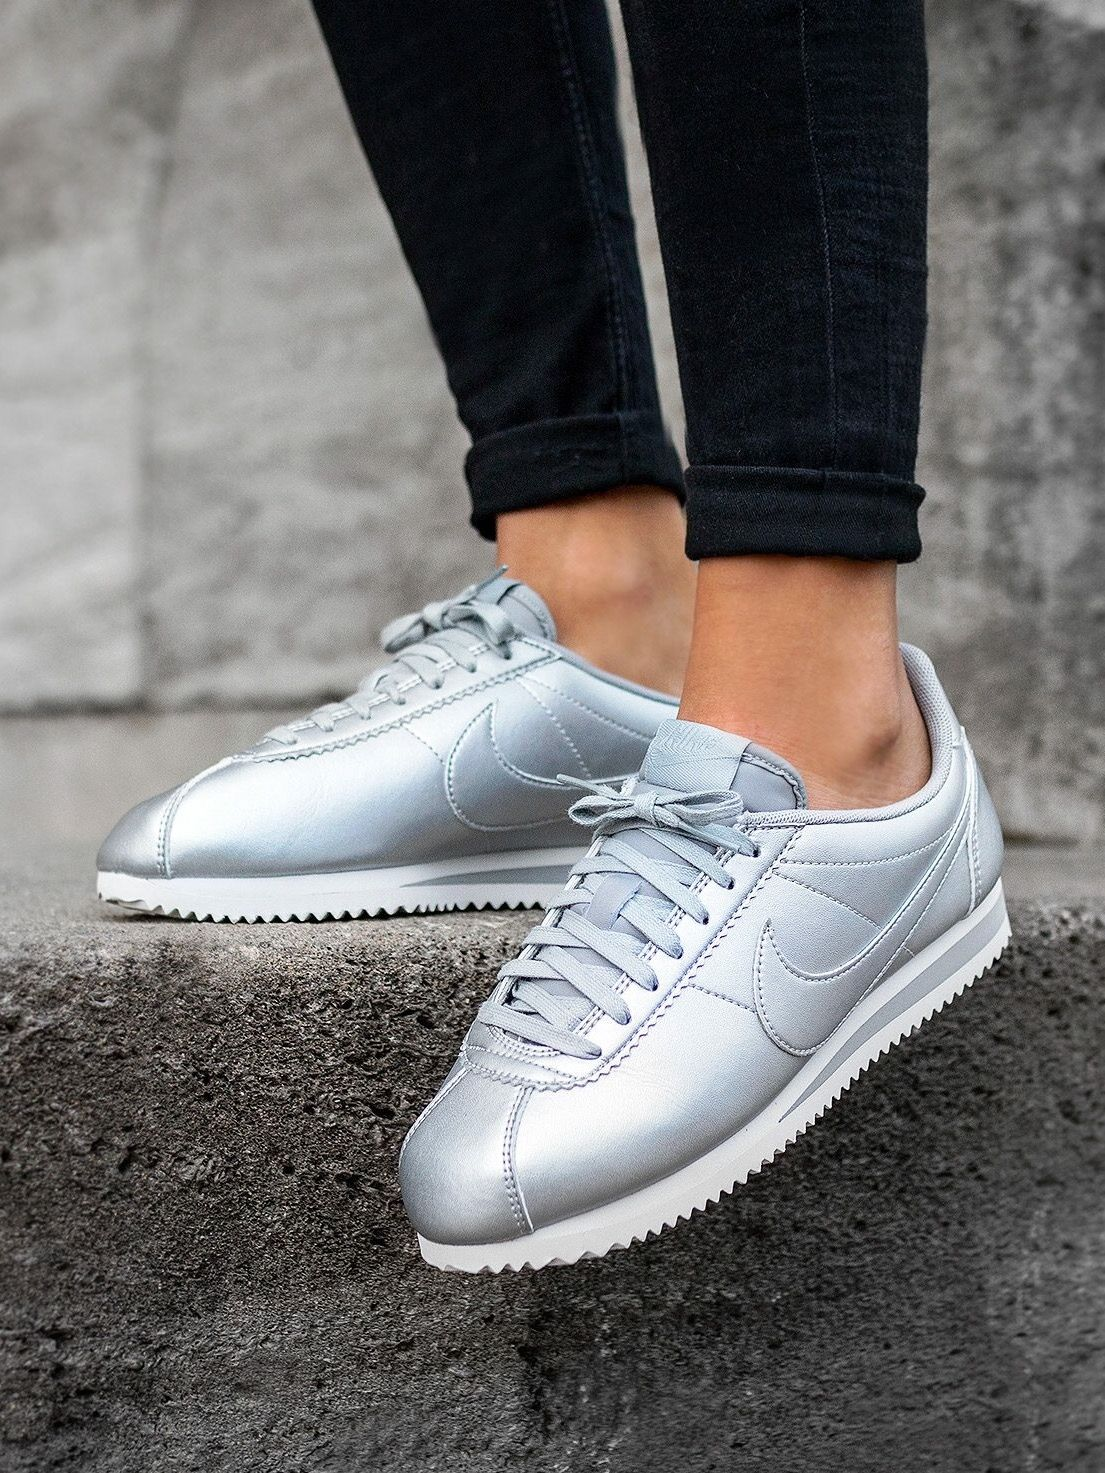 NikeSneakersShoes NikeSneakersShoes NikeSneakersShoes CortezSilverCortez Nike CortezSilverCortez Nike CortezSilverCortez Nike CortezSilverCortez Nike BCWxdroe